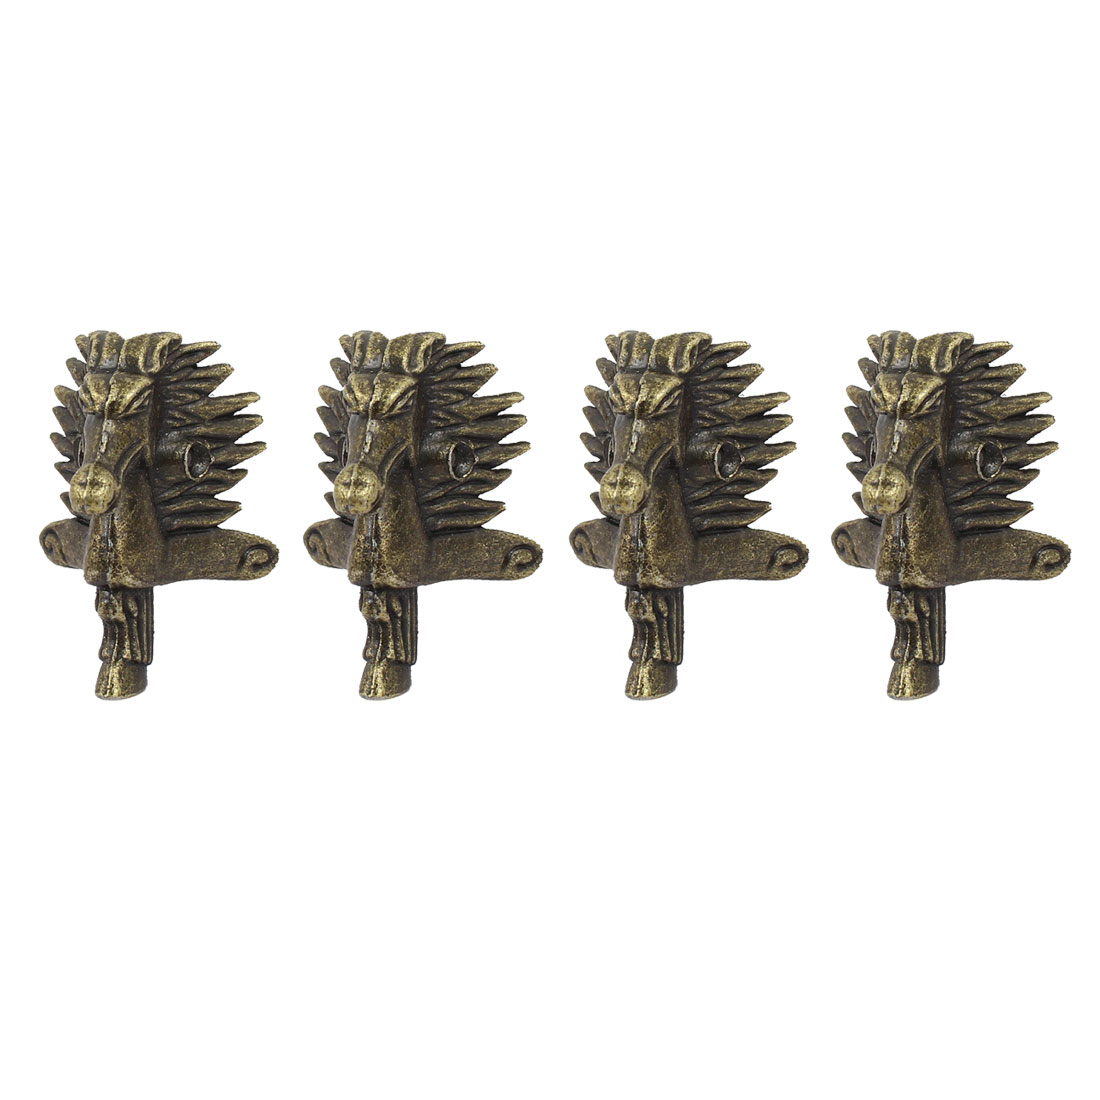 Metal Decorative Antique Box Corner Protector Guard Bronze Tone 4pcs